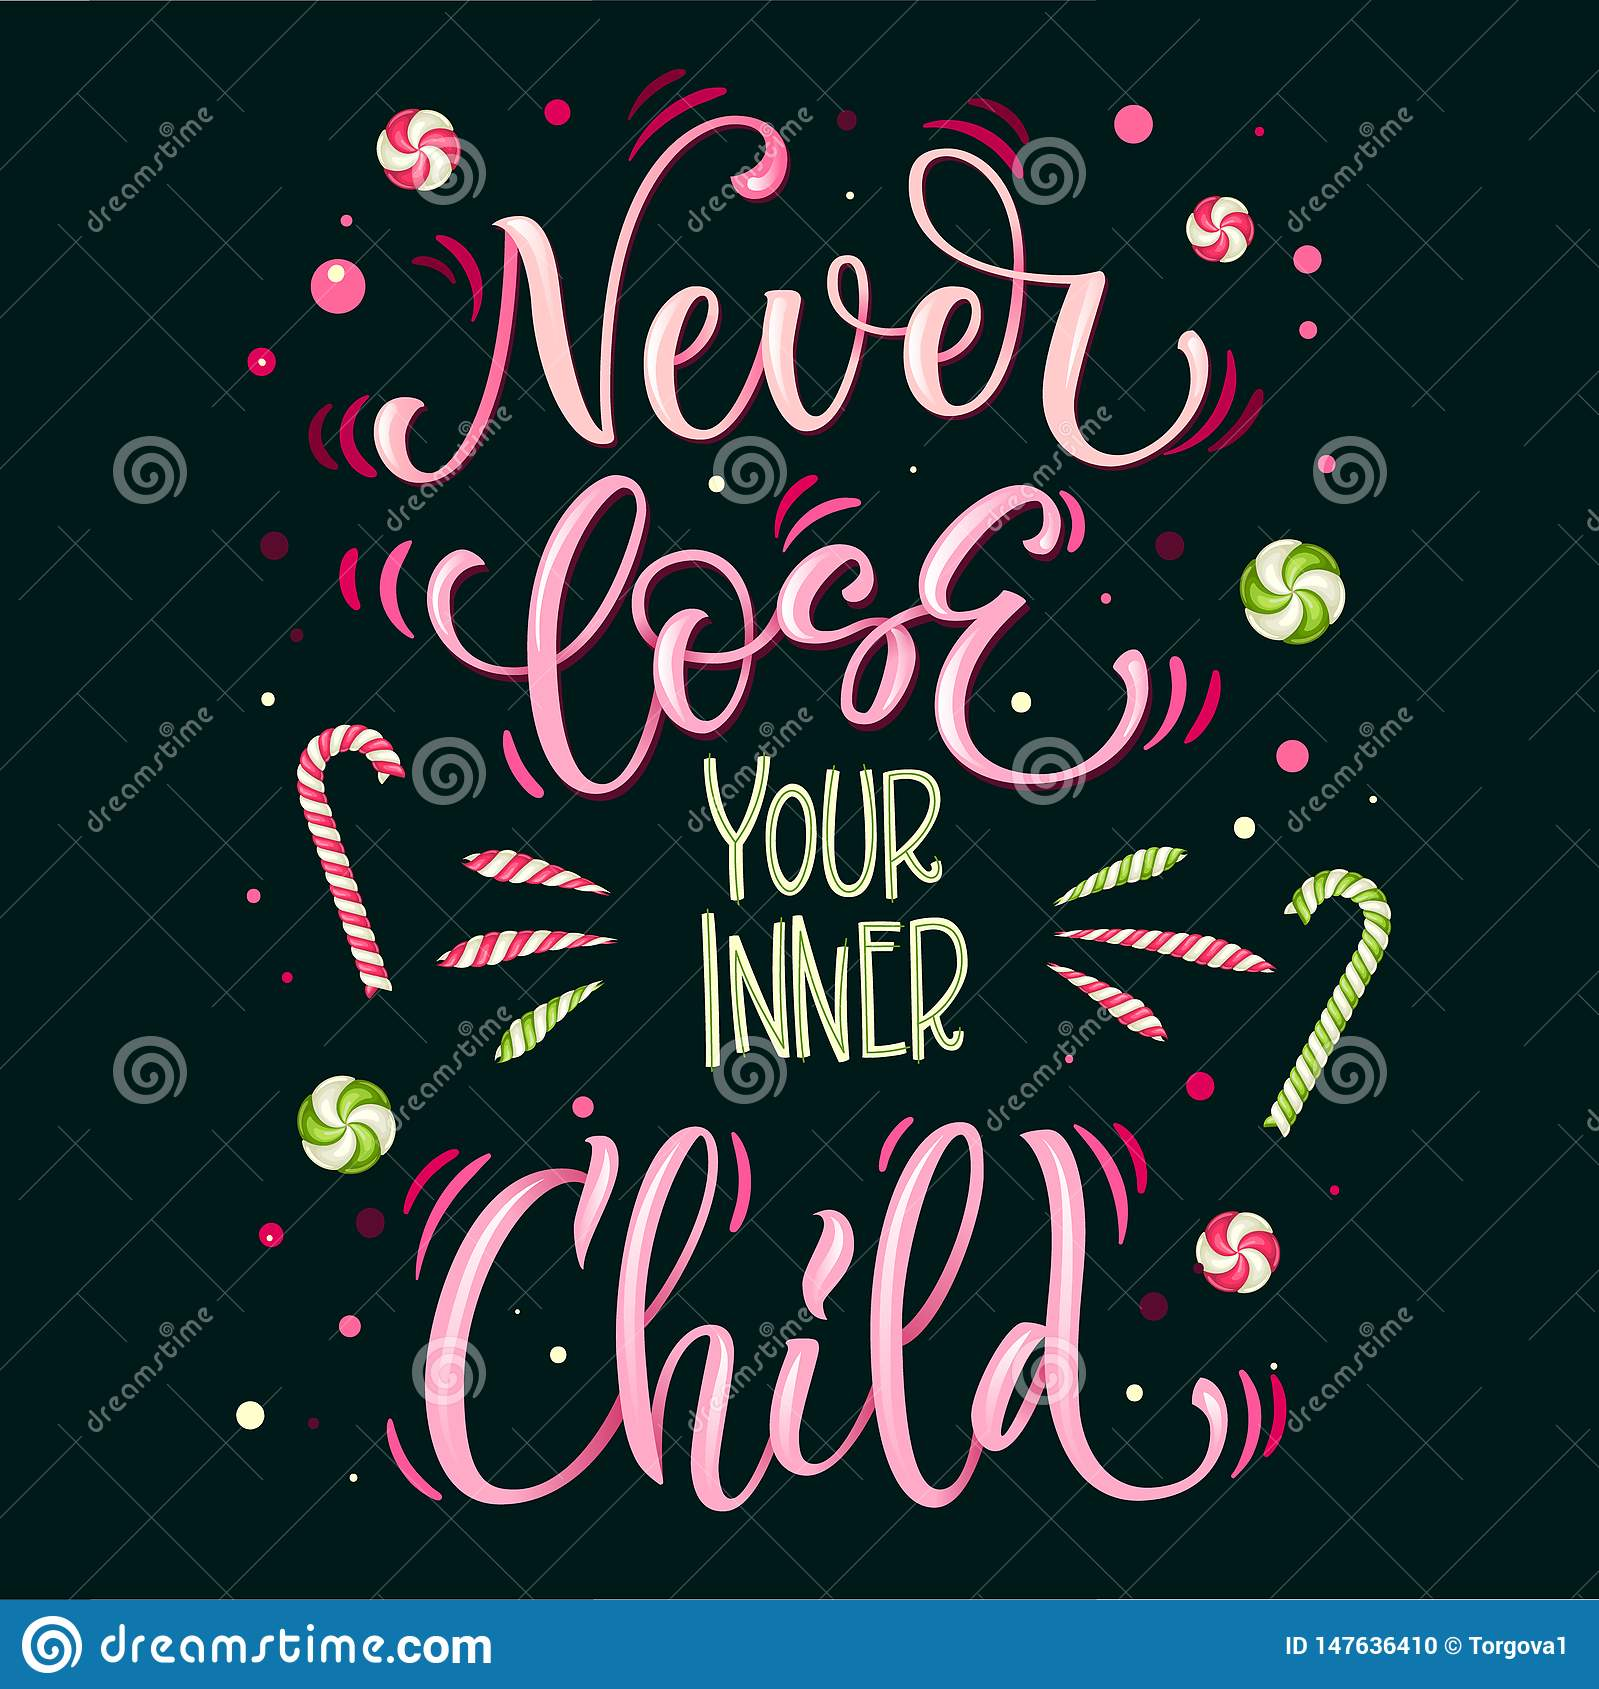 Sweets quote colorful hand draw lettering phrase - Never loose your inner Child - in bright green and pink colors